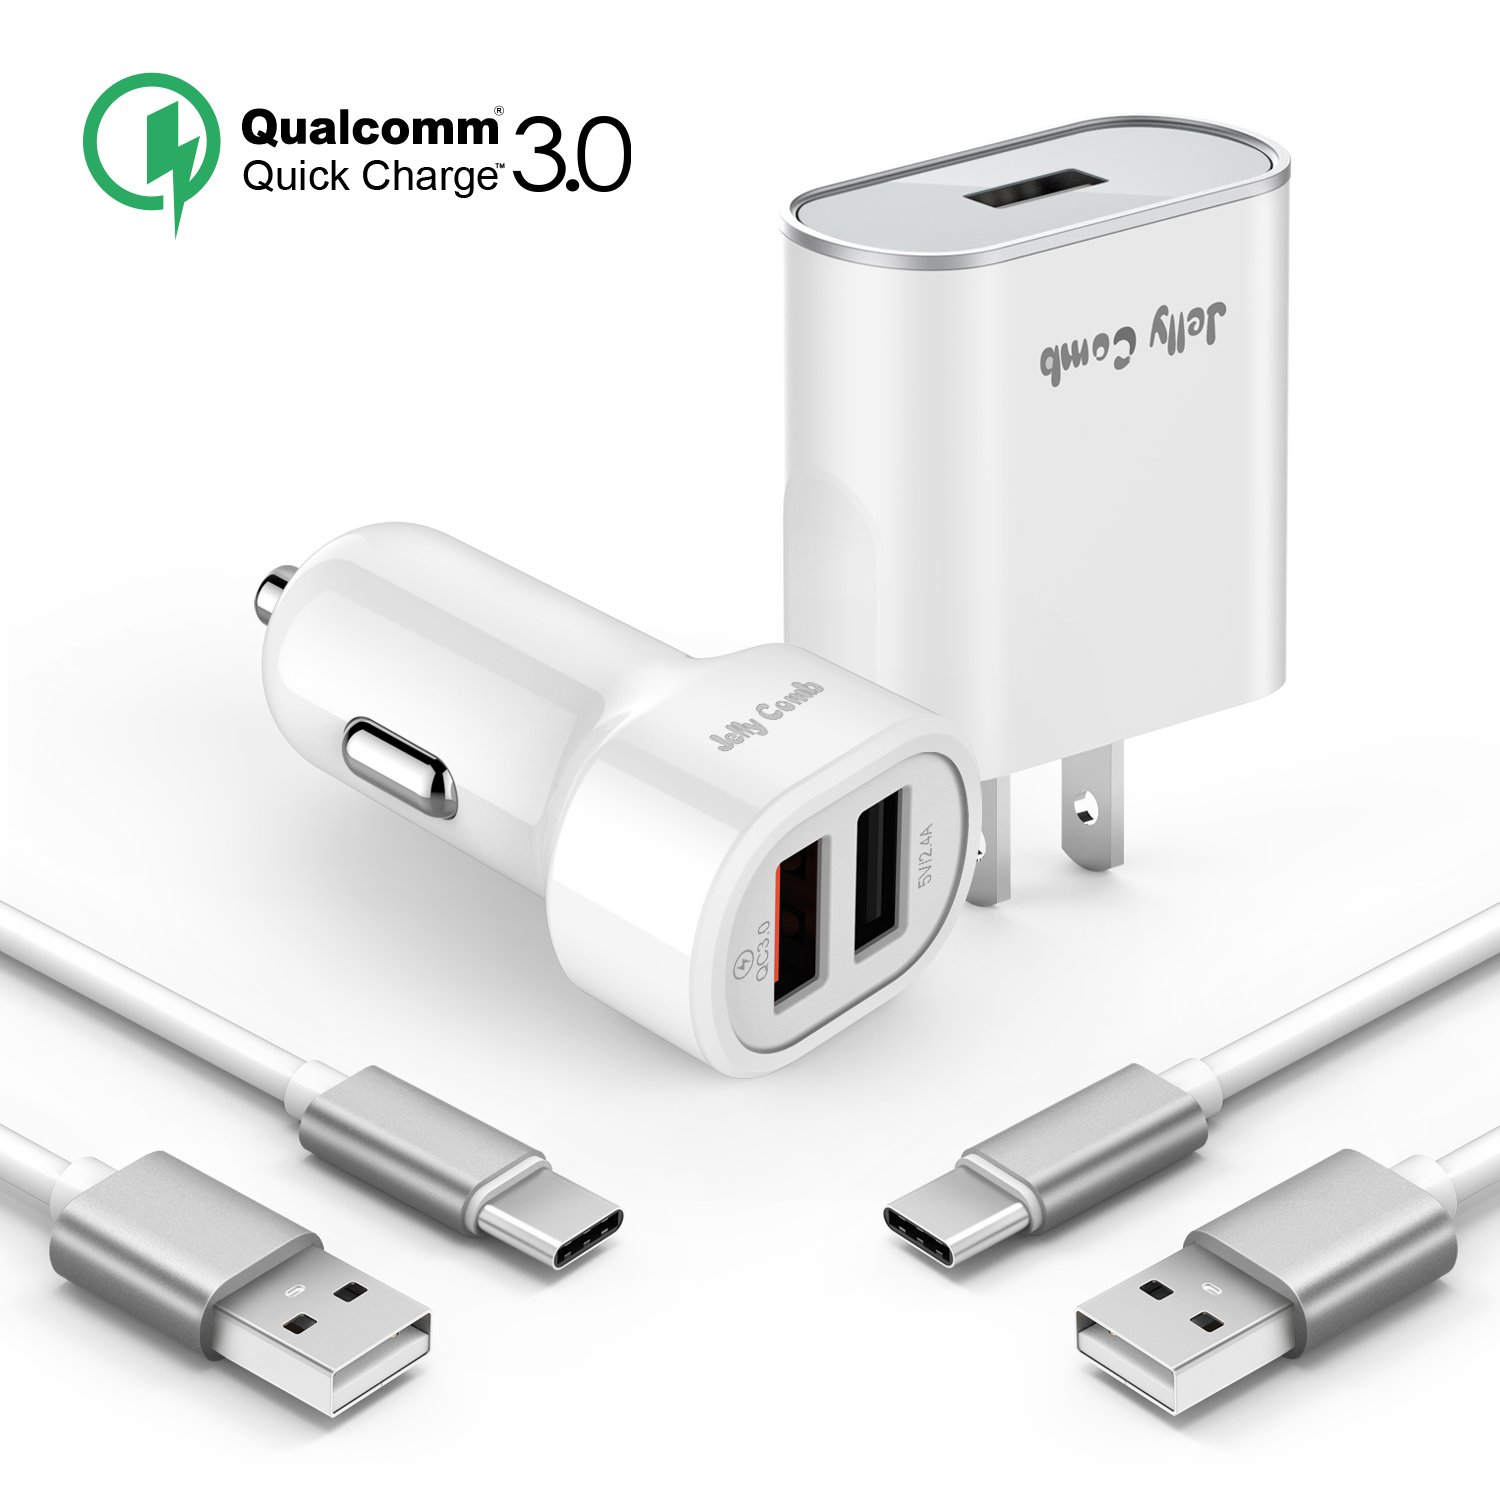 Quick Charge 3.0 Charger Kit Compatible for Samsung Galaxy S9 / Note 8 / S8, Jelly Comb Dual USB Car Charger + Wall Charger + 2 Pack USB Type C Cables Compatible for Galaxy S8 Plus, S9 Plus (Black)